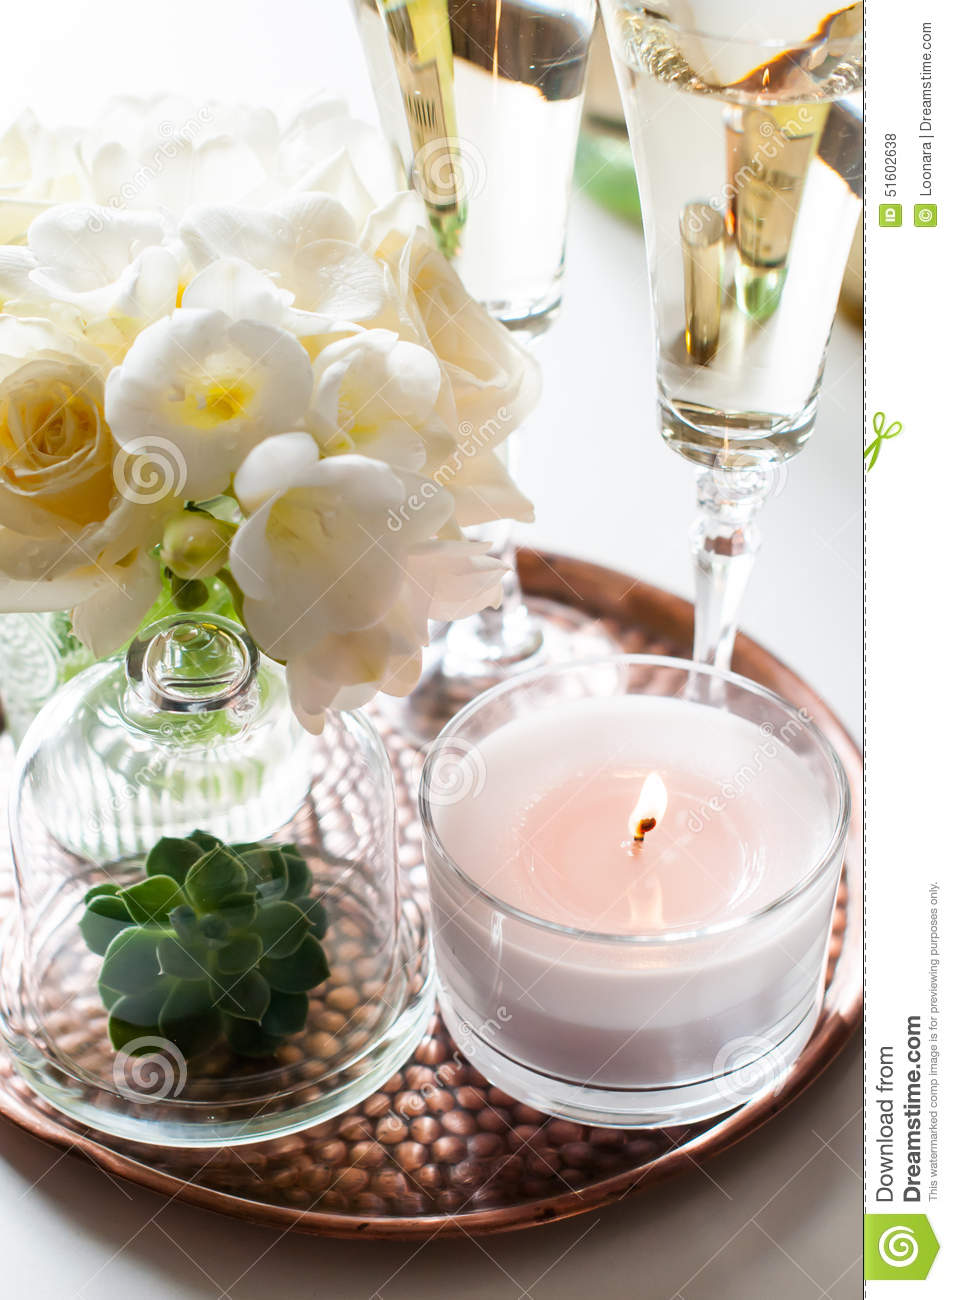 Wedding home decor stock photo image 51602638 for Aana decoration decorative tray